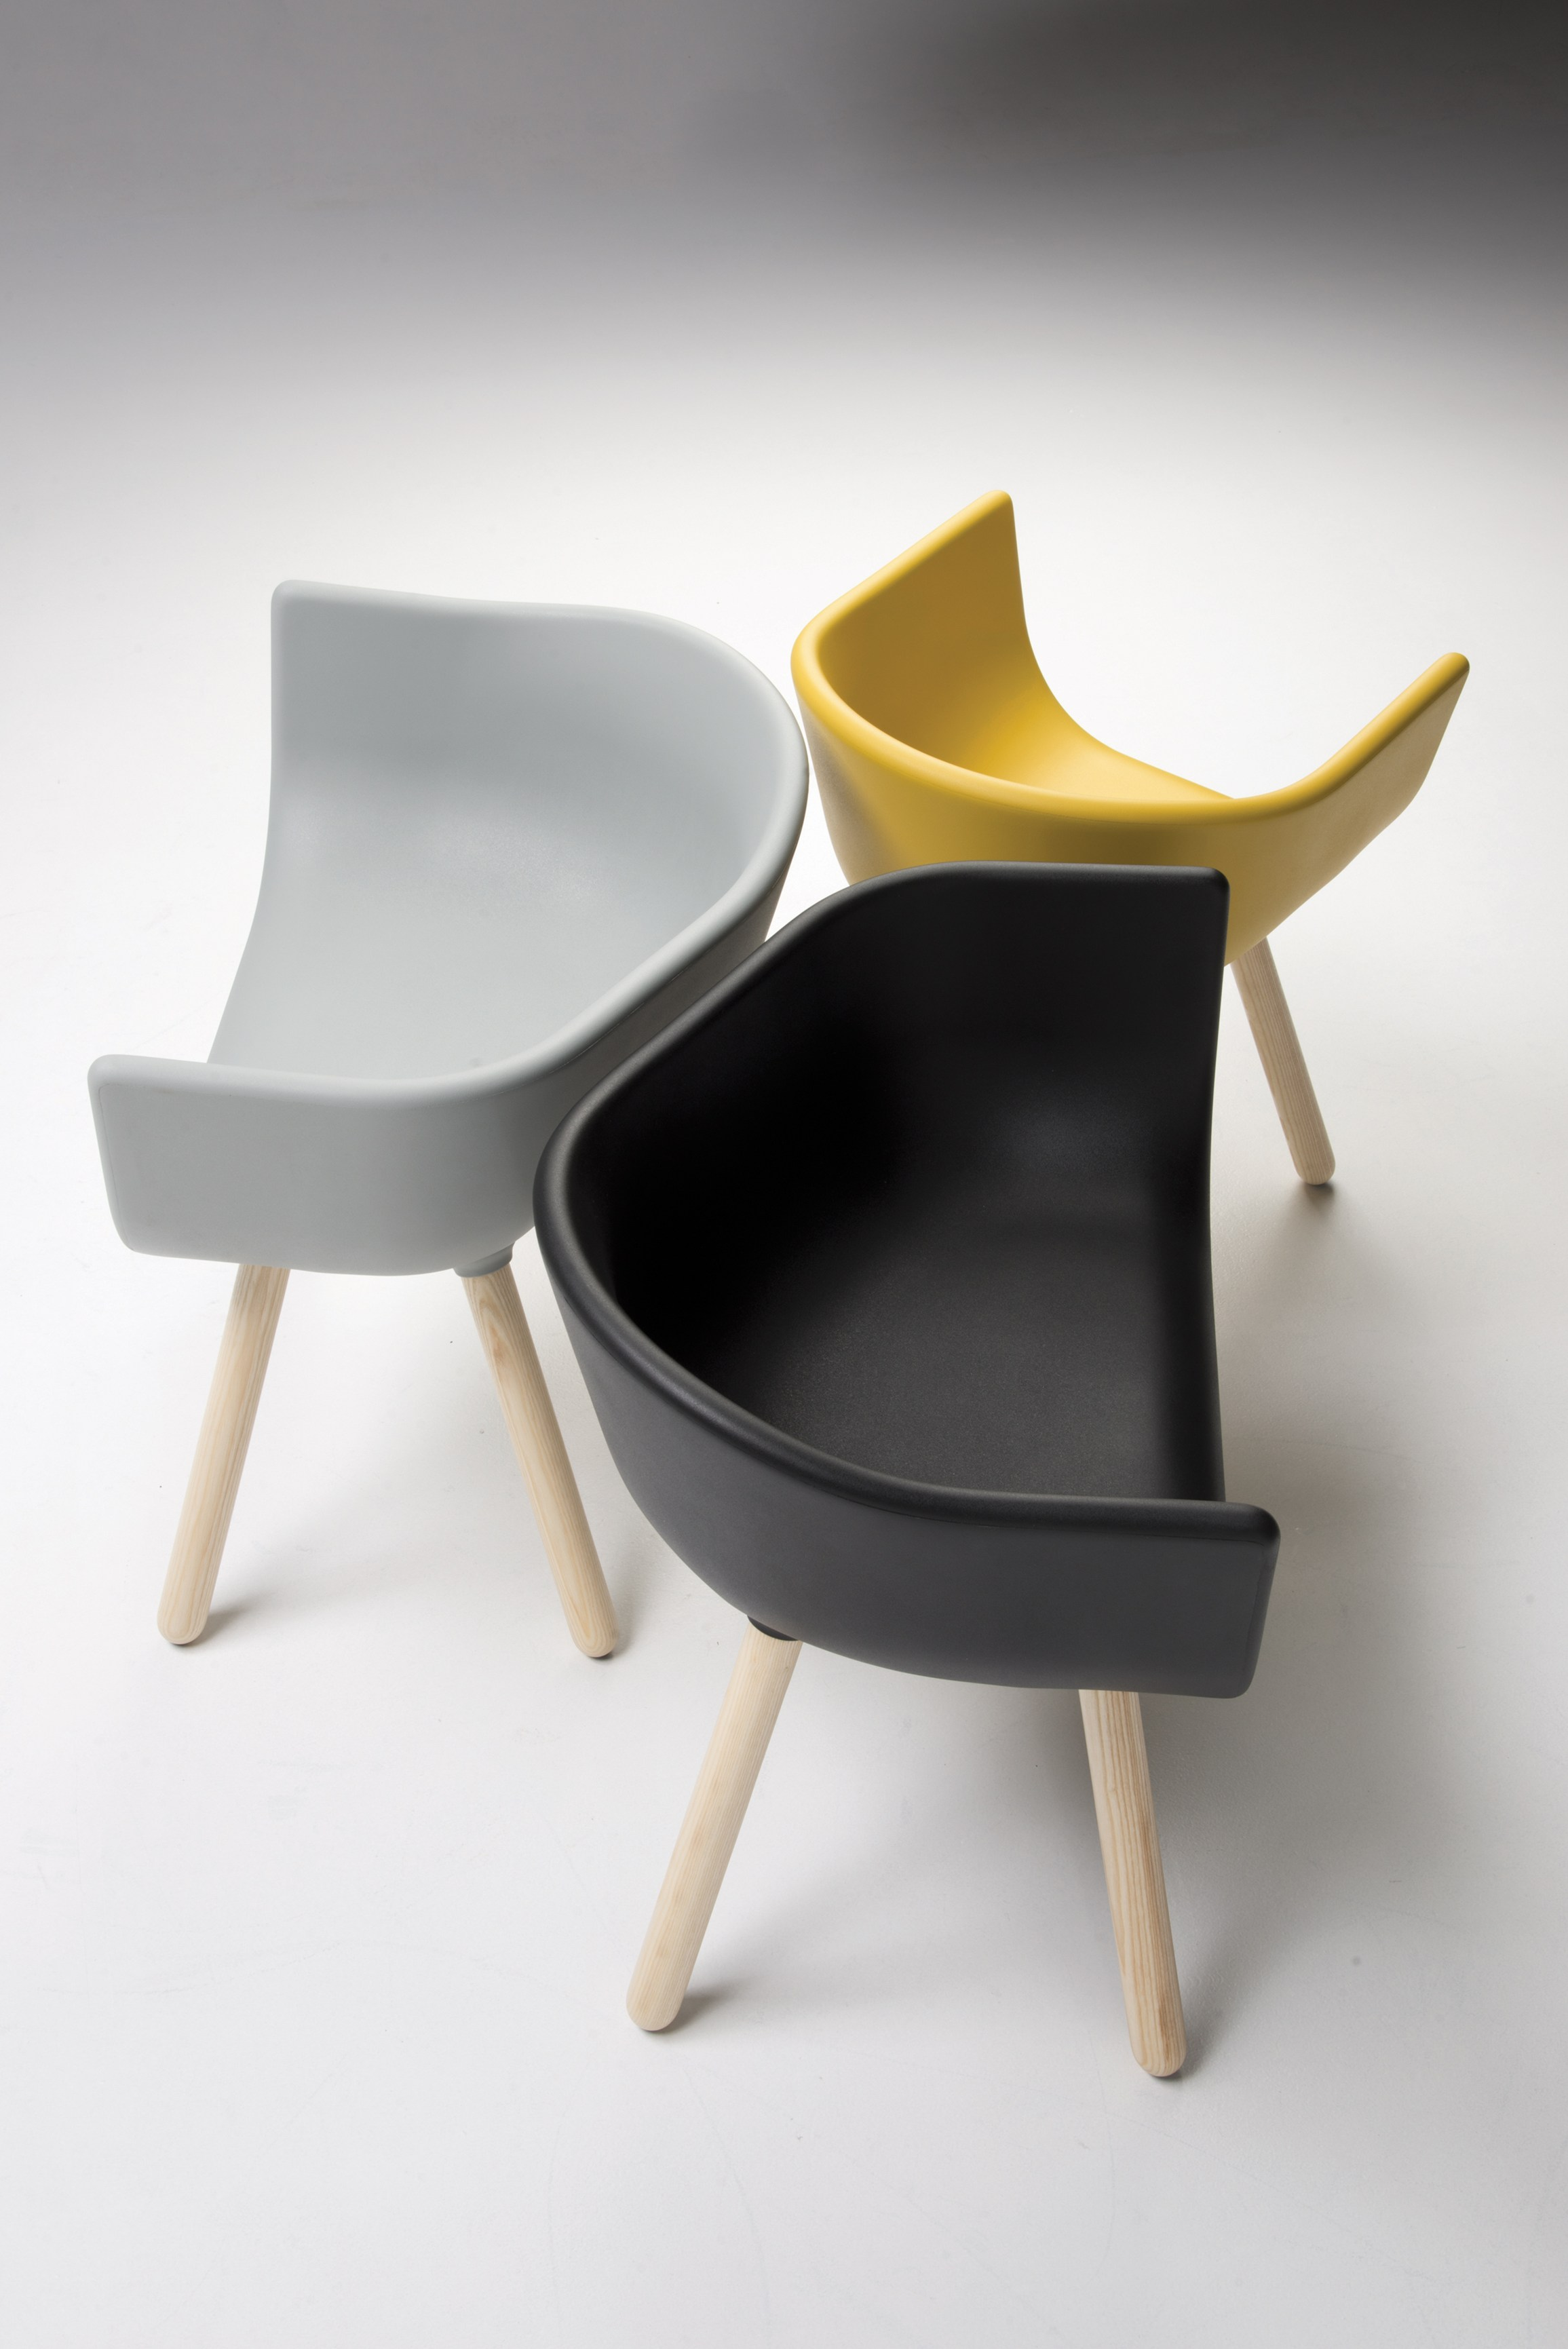 Tulip Large Chairs by Kazuko Okamoto for Chairs & More